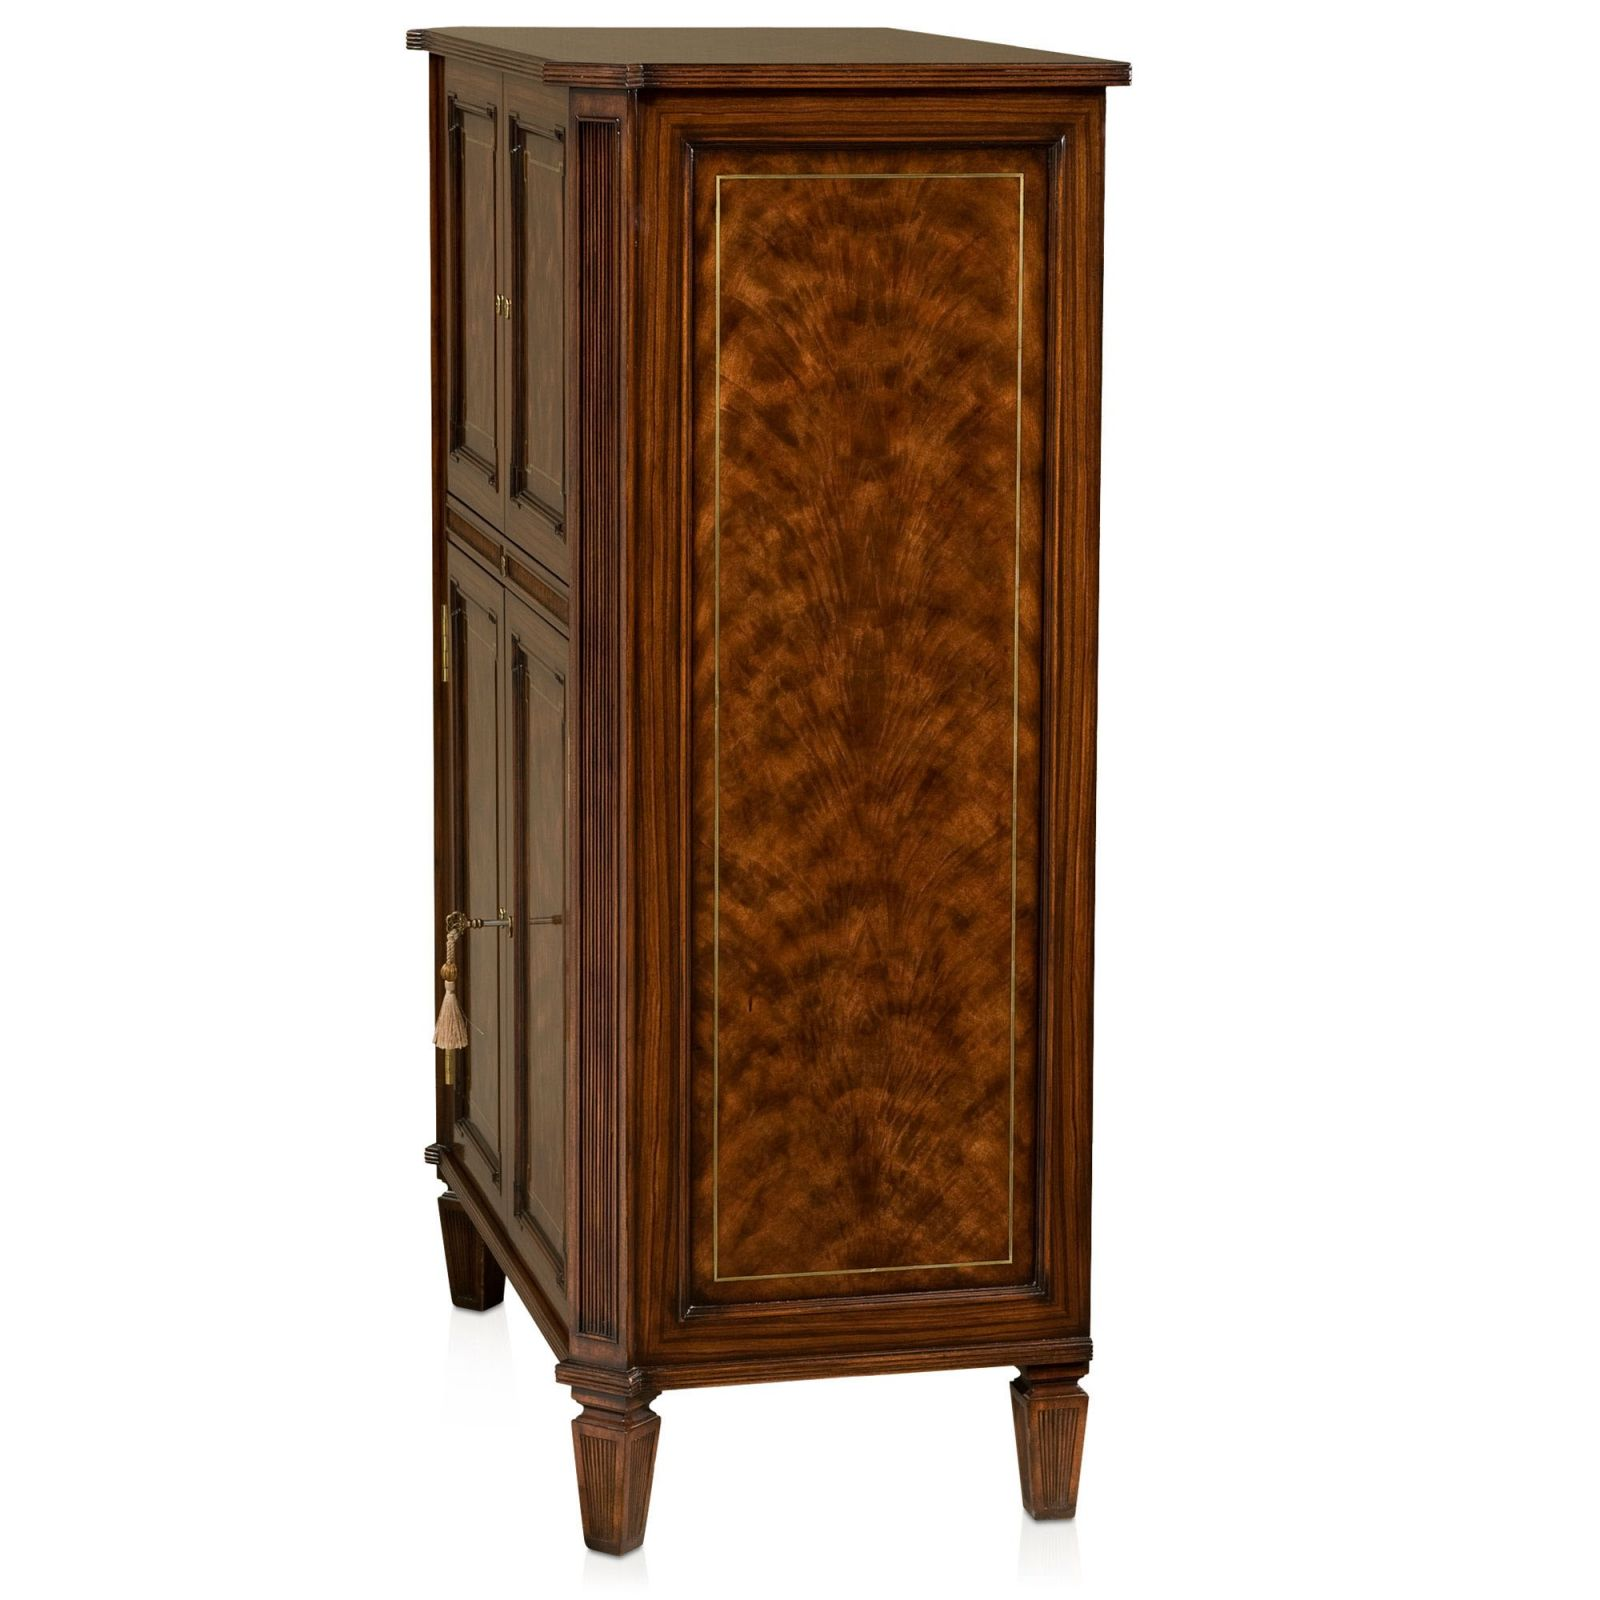 Flame mahogany drinks cabinet with brass inlay - Ex demonstrator